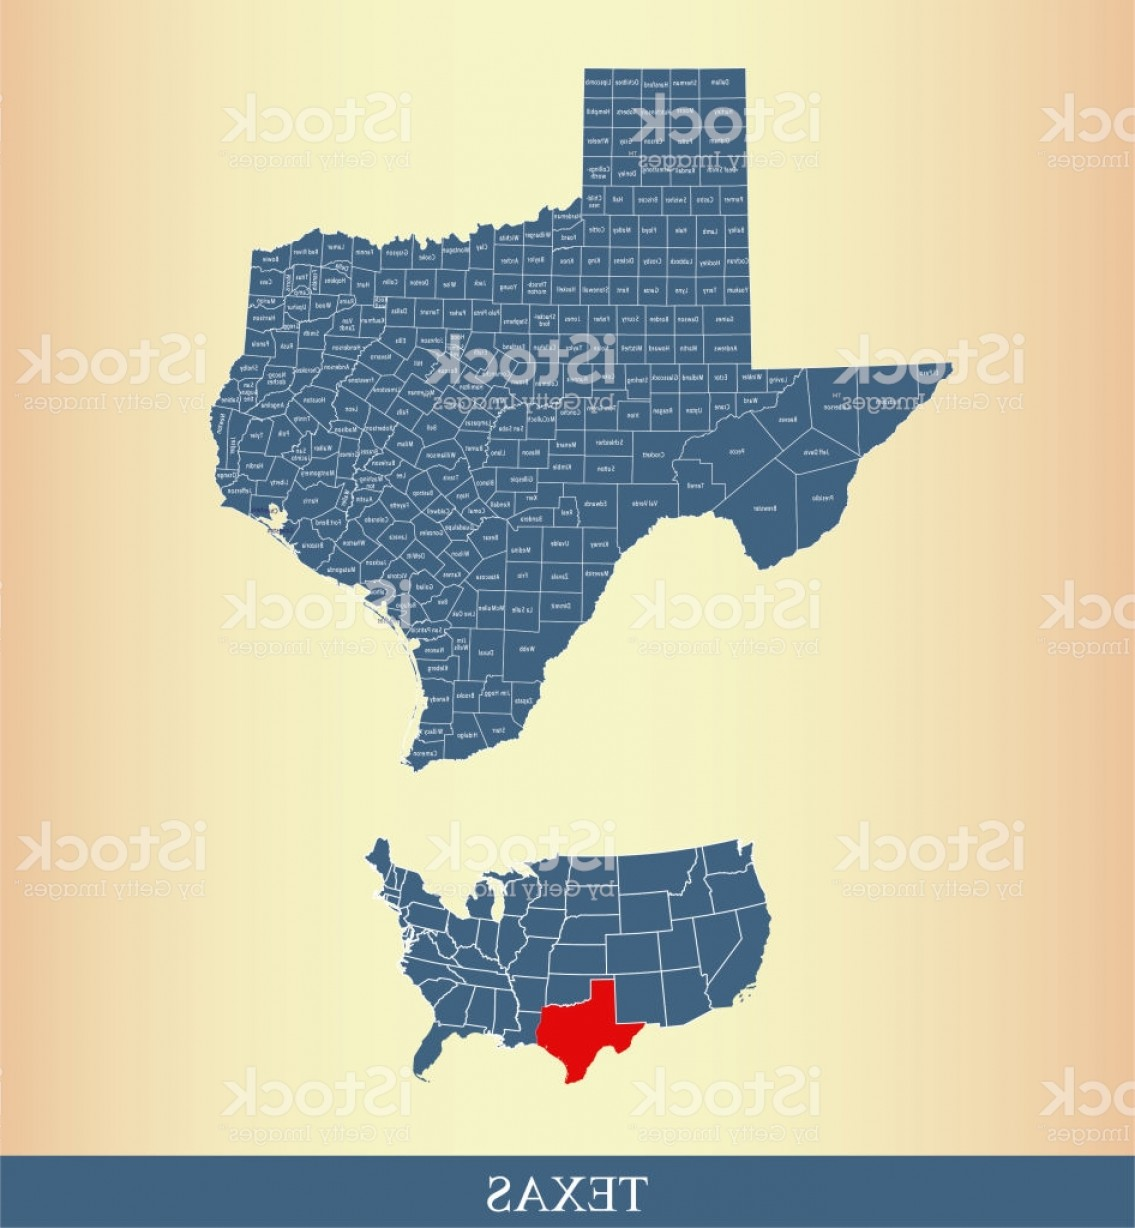 Texas Counties Map Vector: Texas County Map Outline Vector Illustration Highlighted On Usa Map With Counties Gm